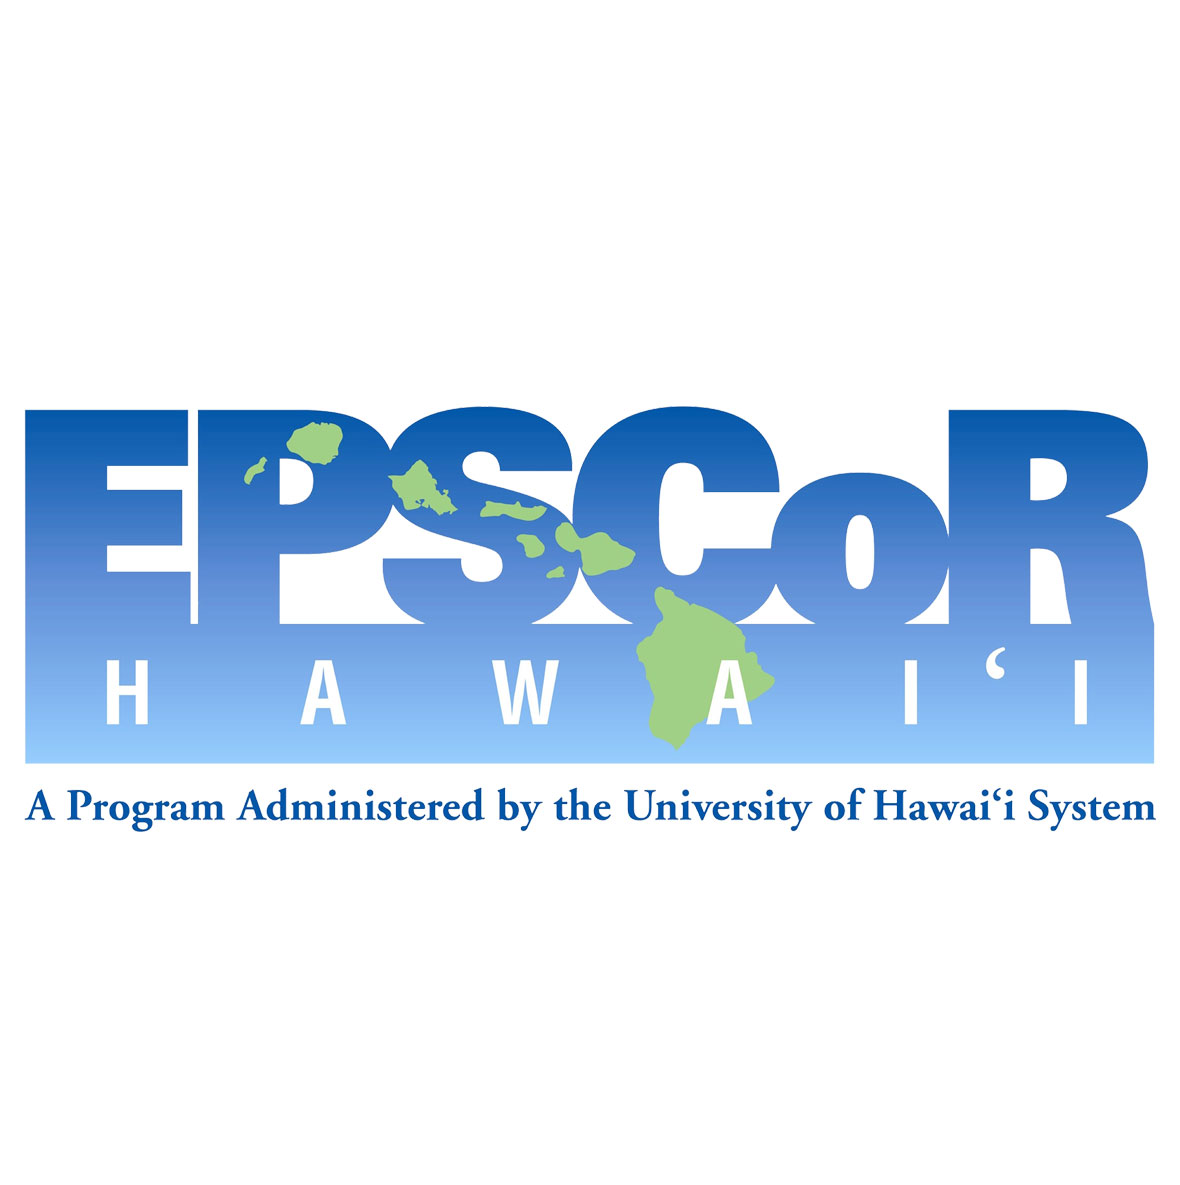 epscor logo graphic